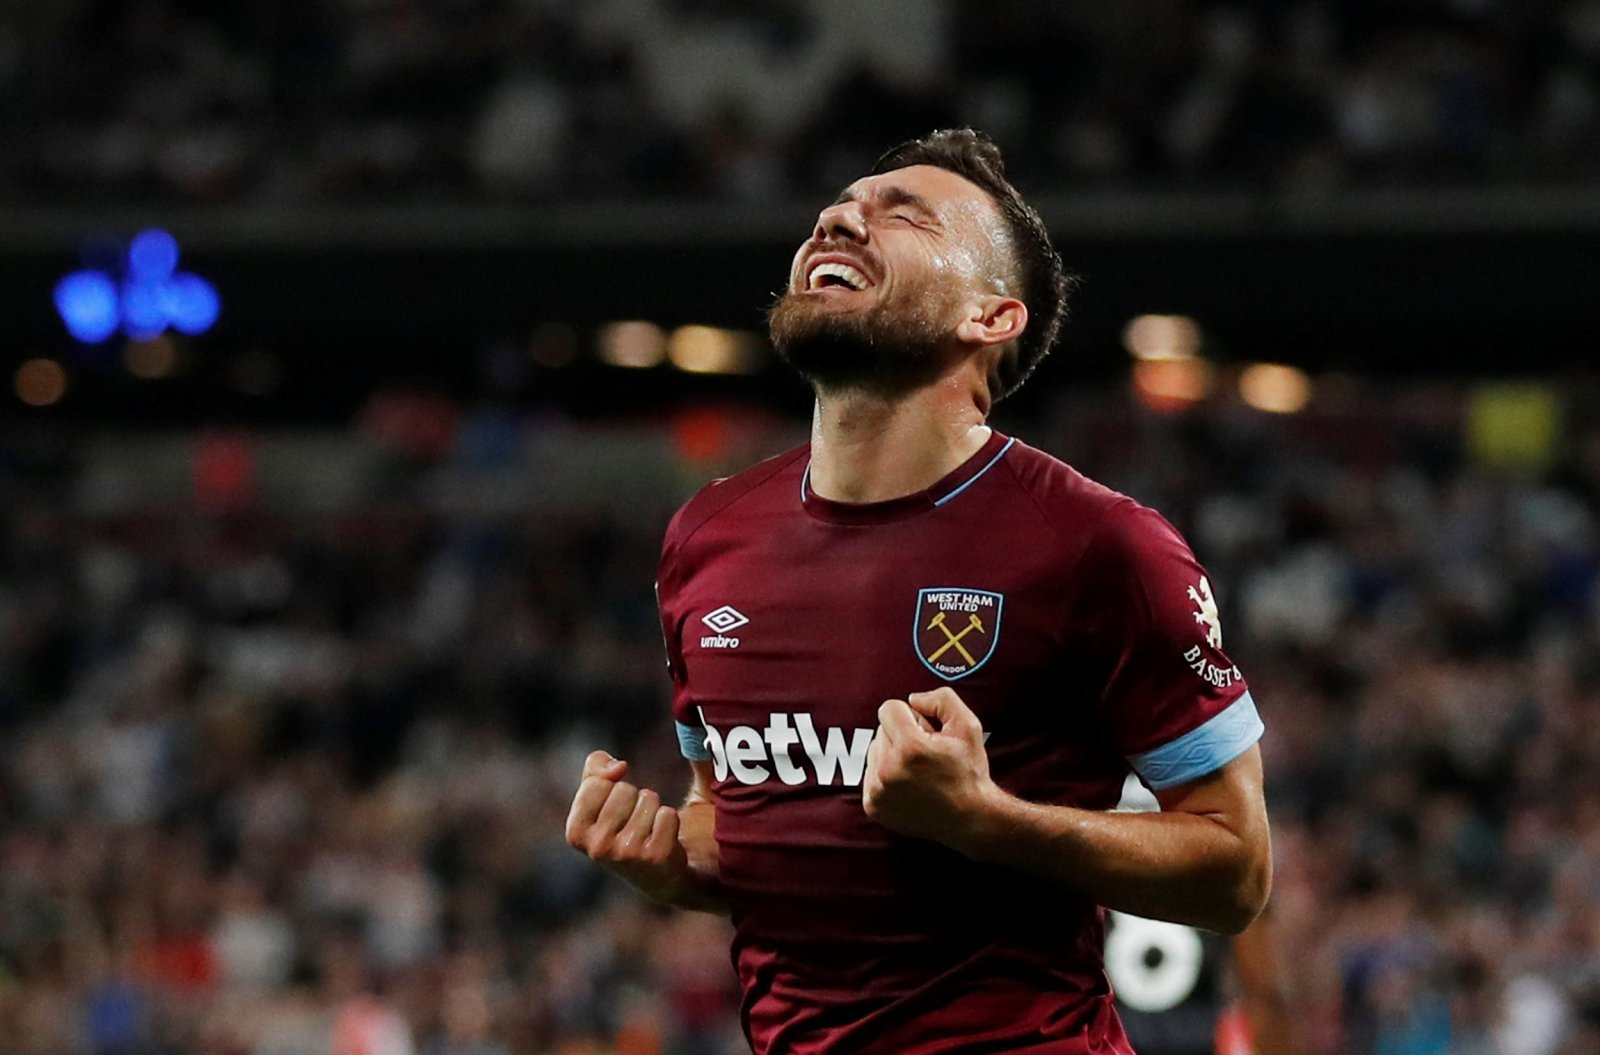 Introducing the star to suffer from Manuel Lanzini's West Ham return: Robert Snodgrass